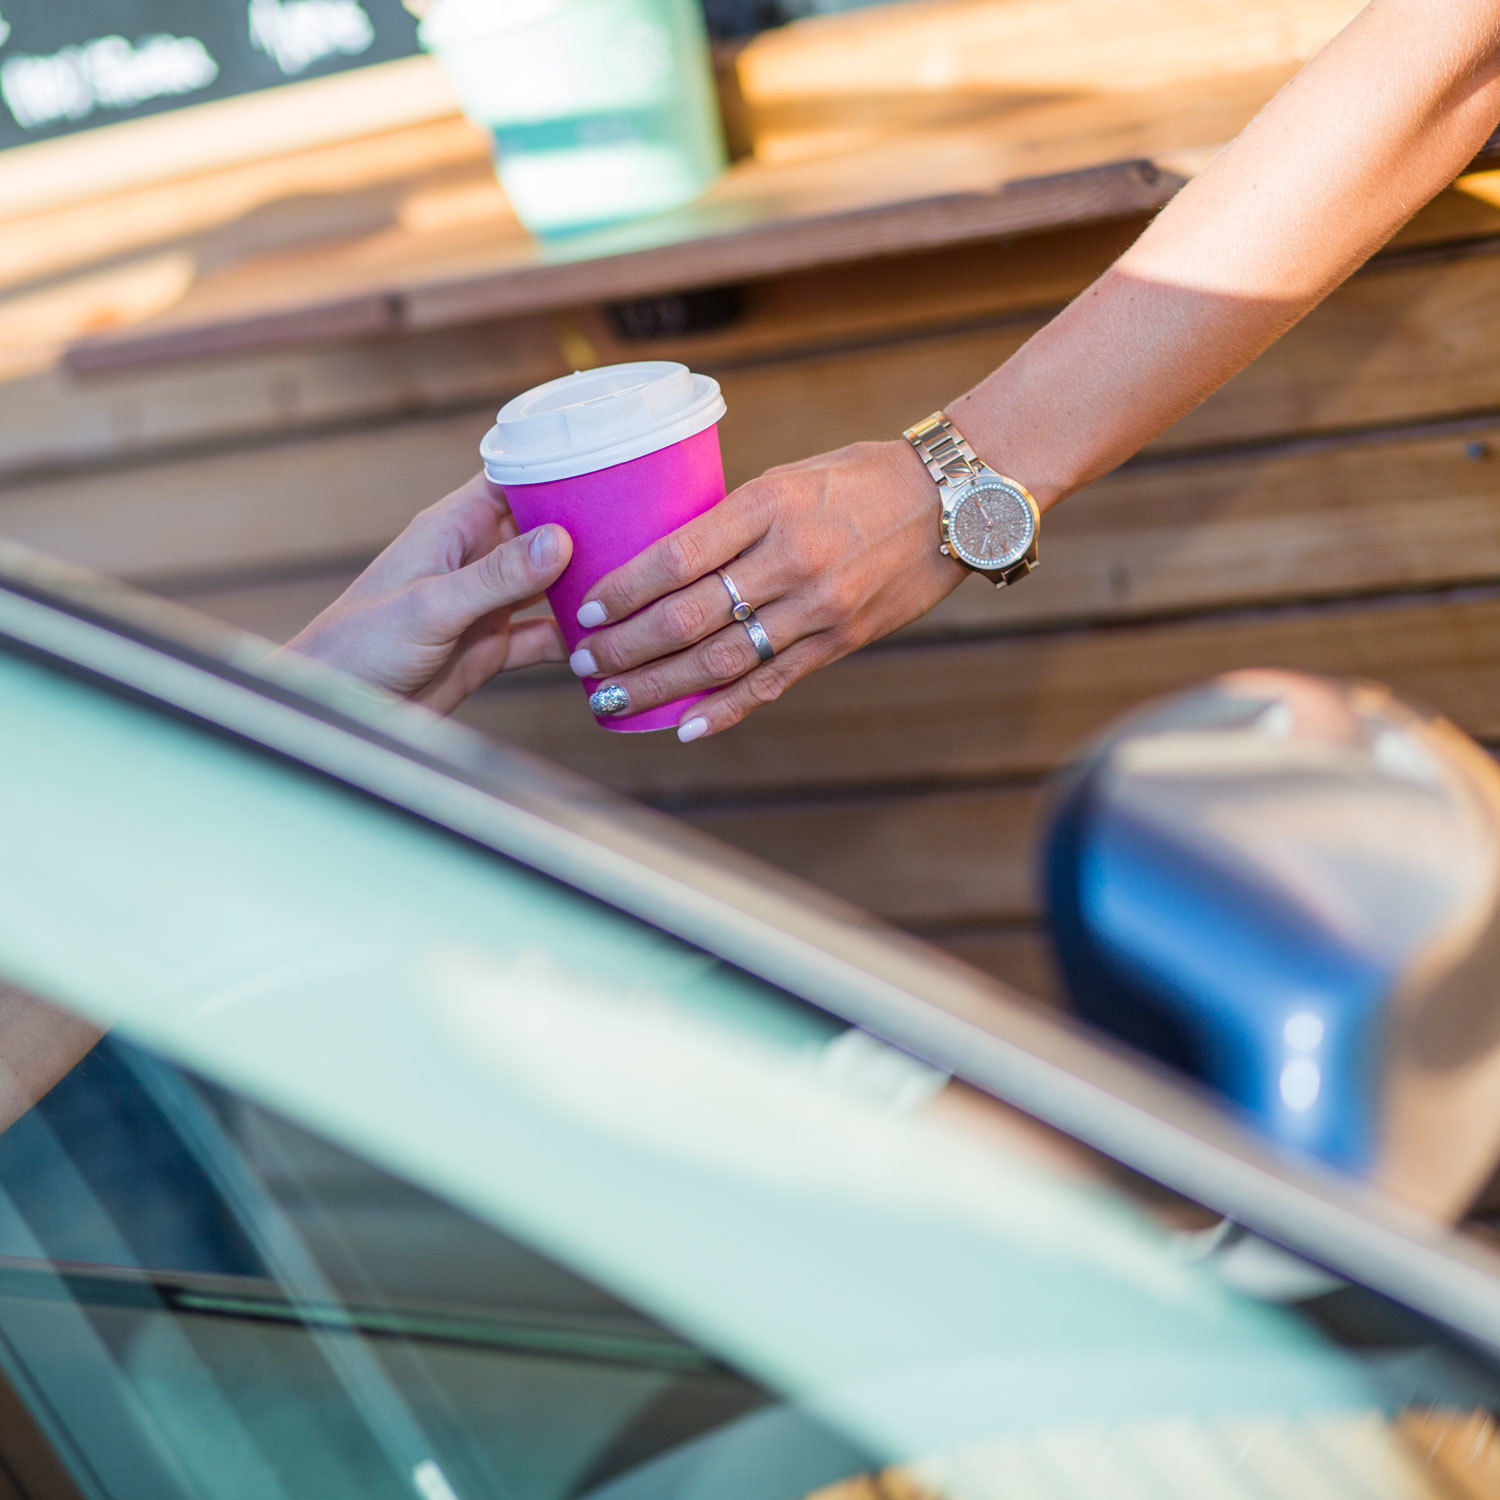 arm handing coffee to someone in a car at a drive thru